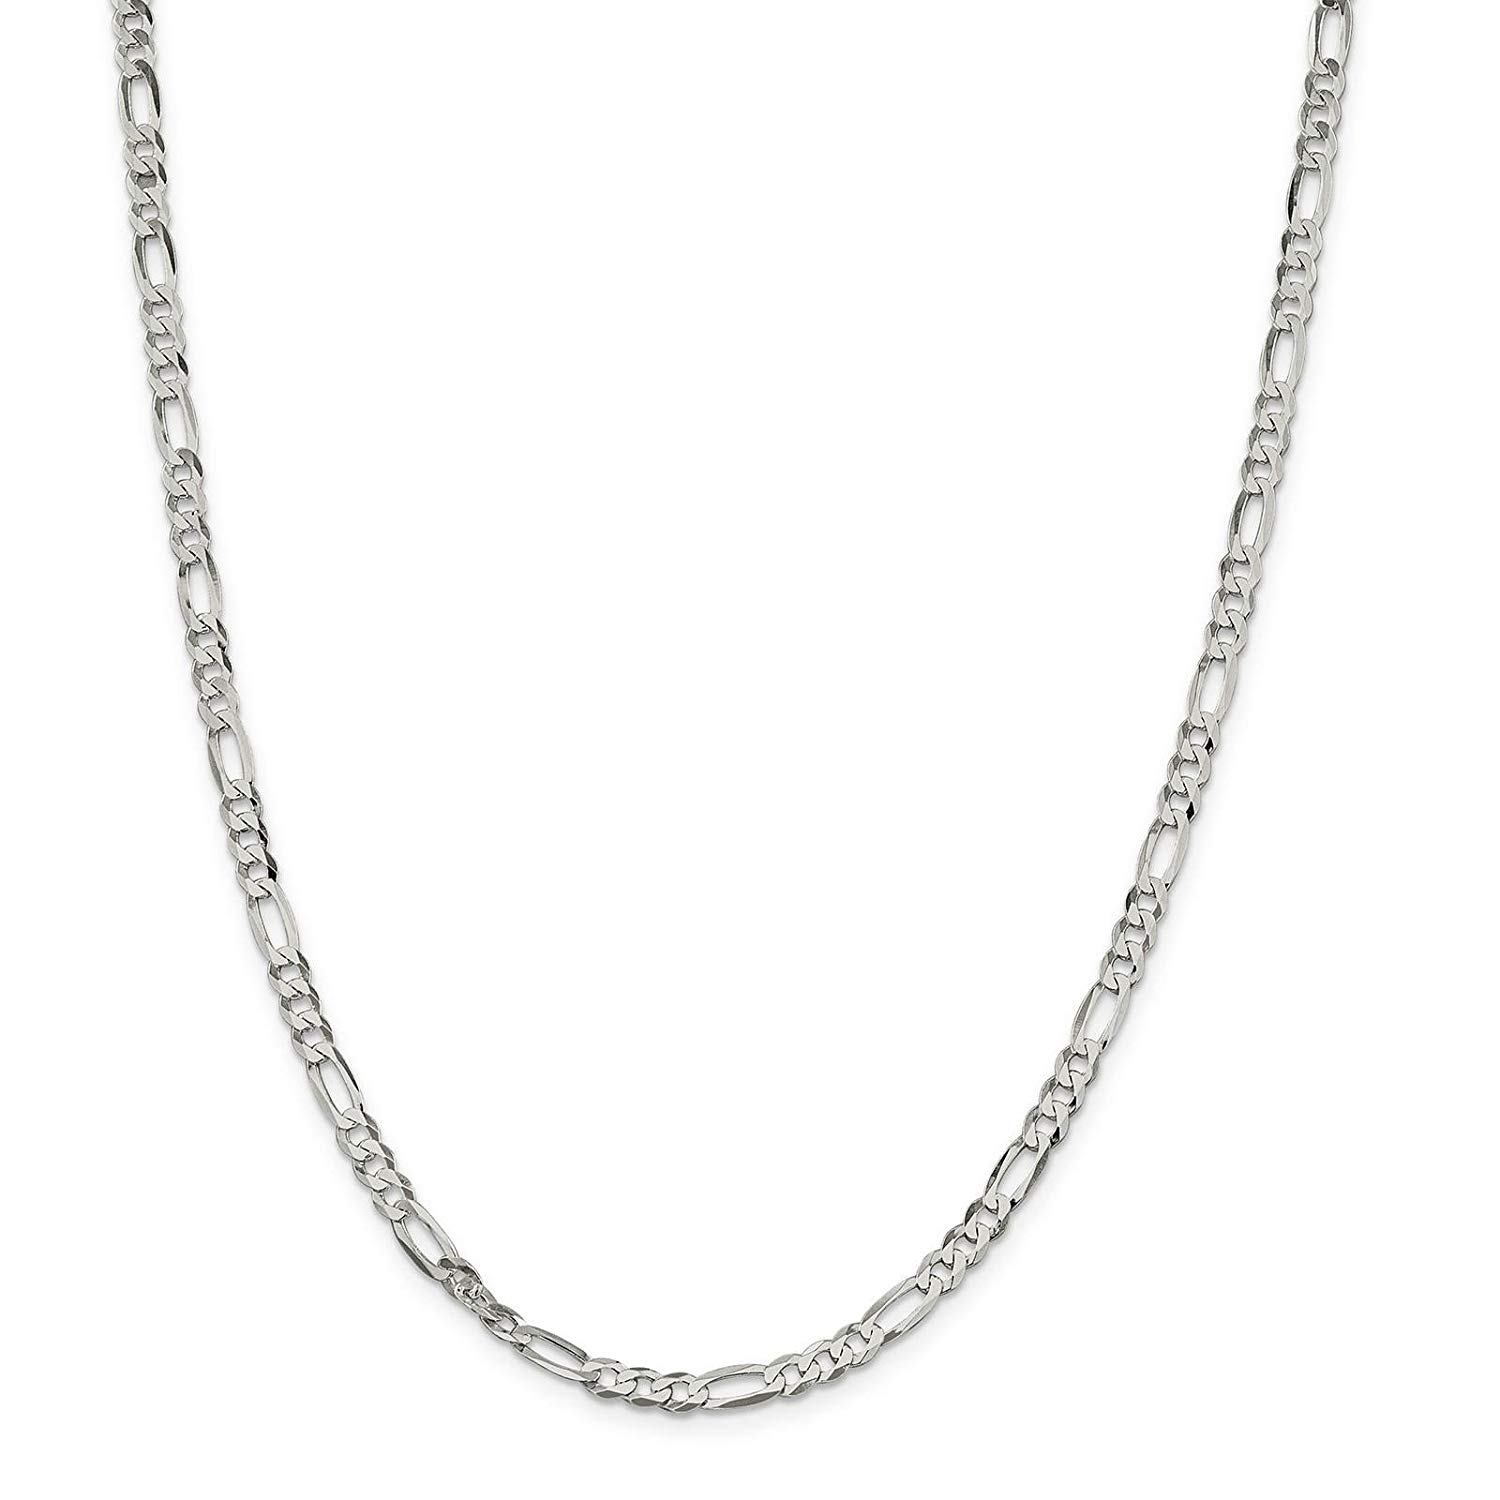 "925 Sterling Silver 4.5mm Polished Flat Figaro Link Chain Necklace 7"" - 24"""